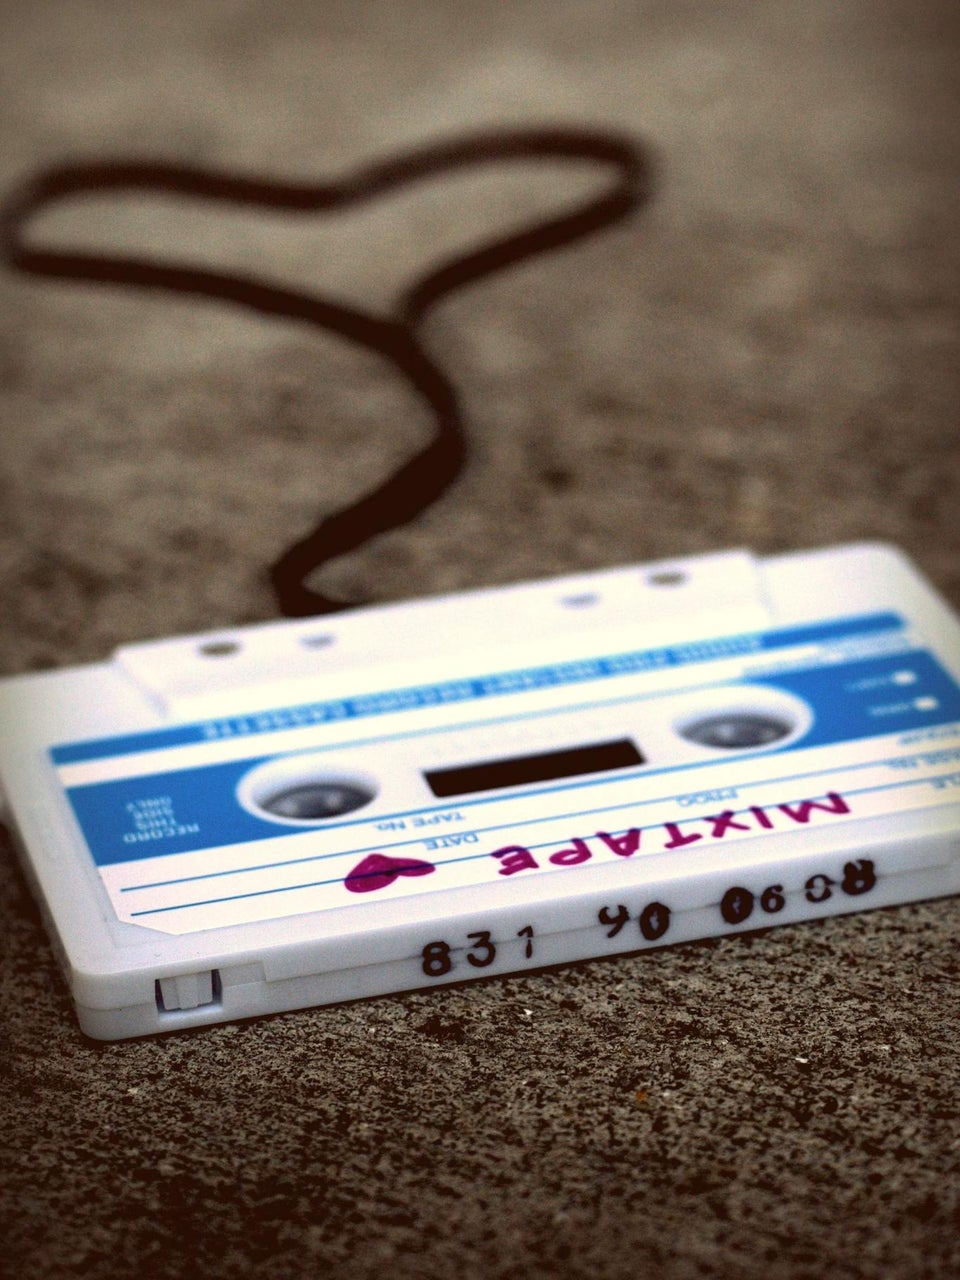 Throwback Thursday: What Cassette Tape Did You Wear Out?